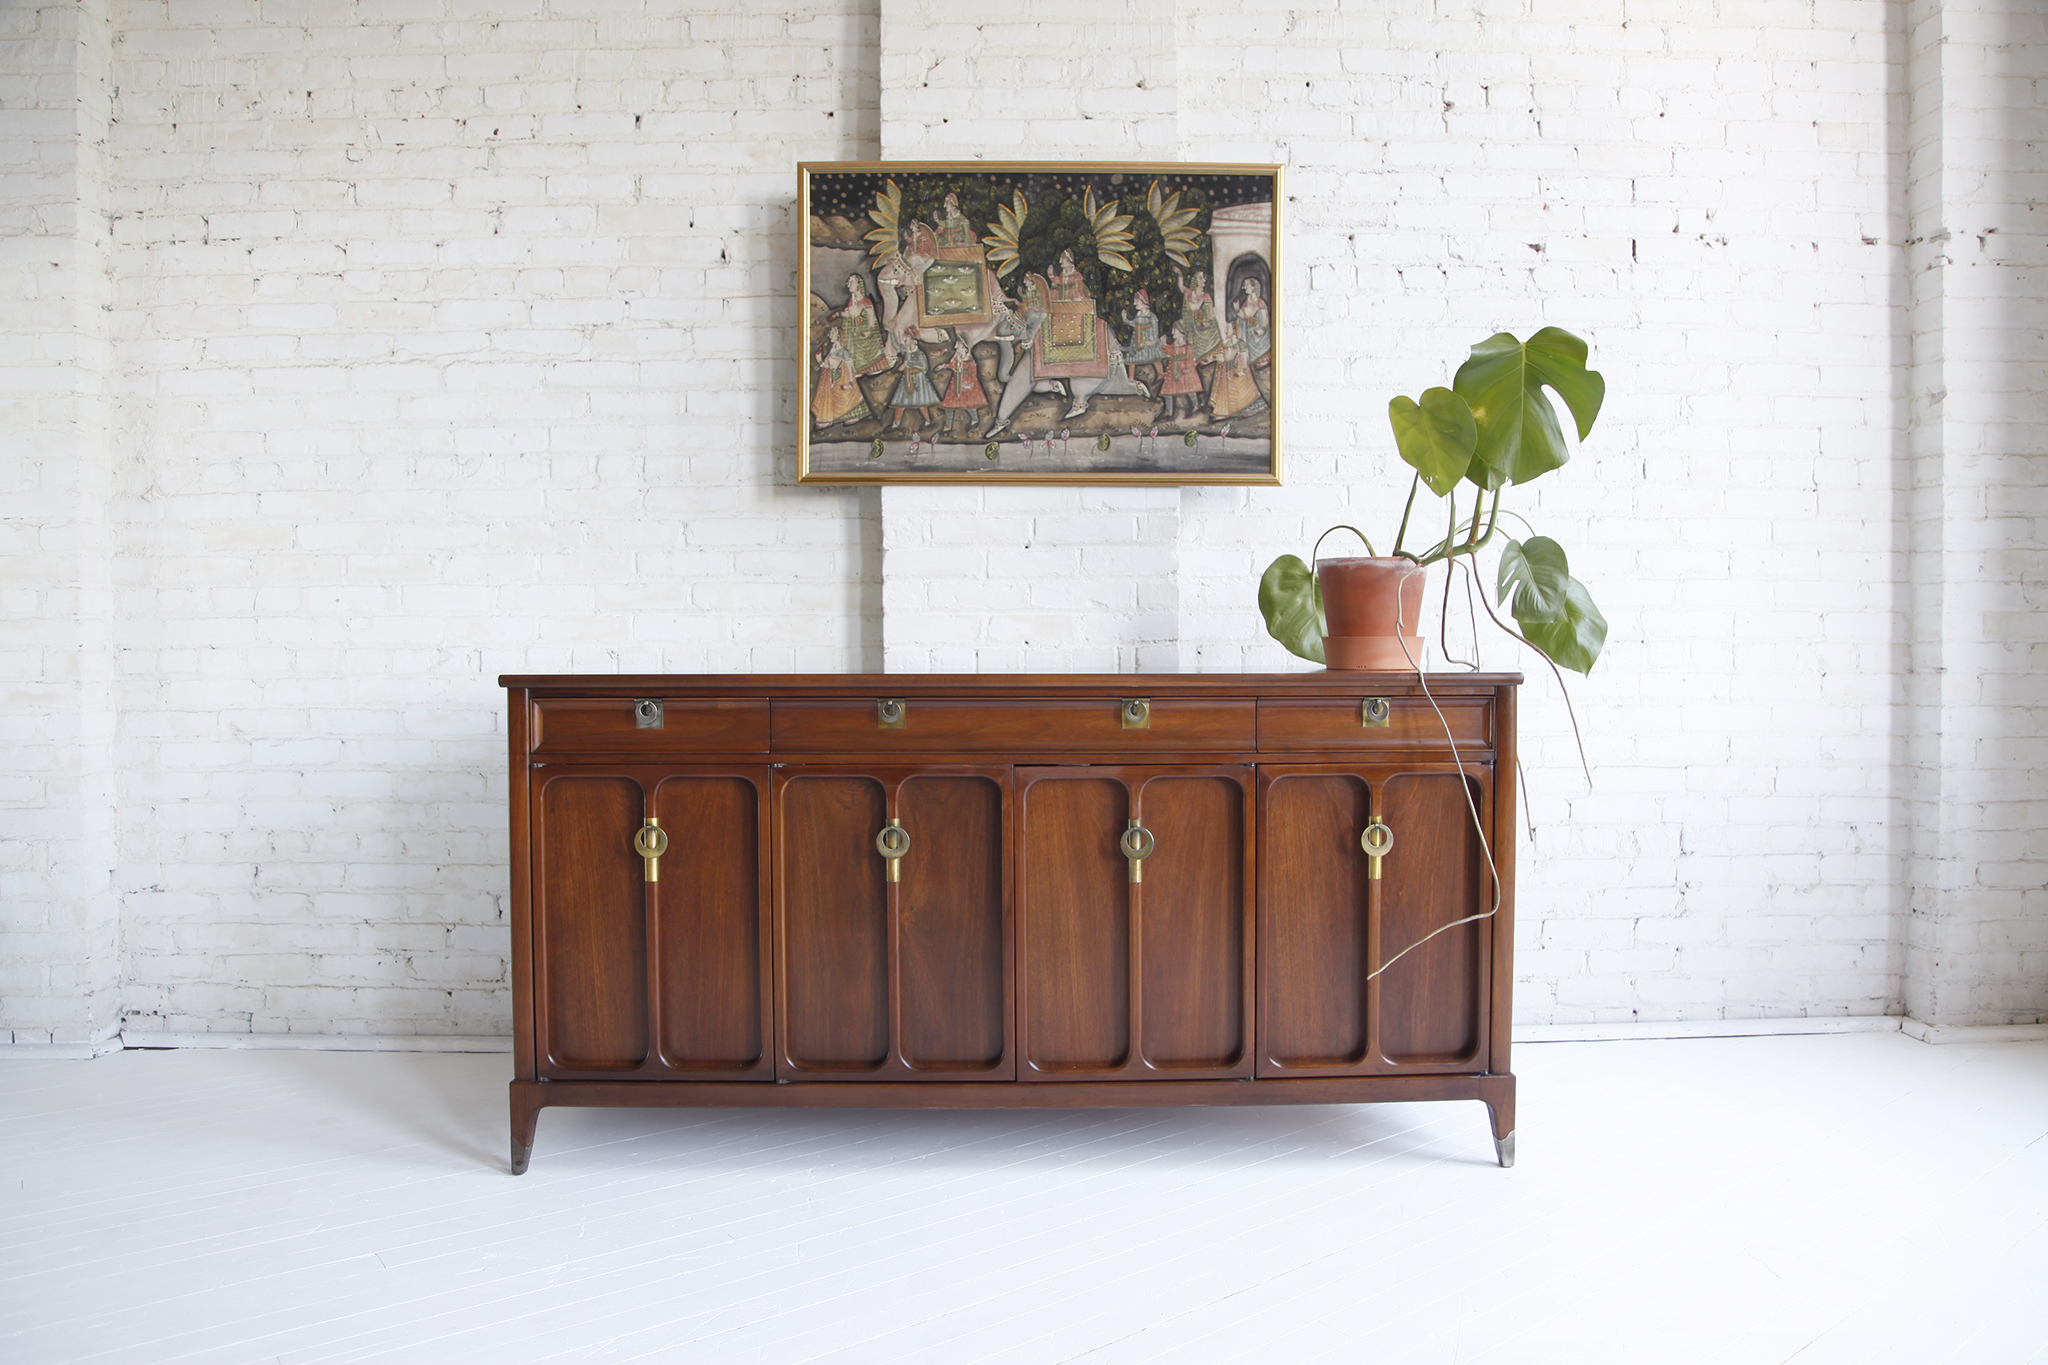 Mid century modern credenza by White furniture co.